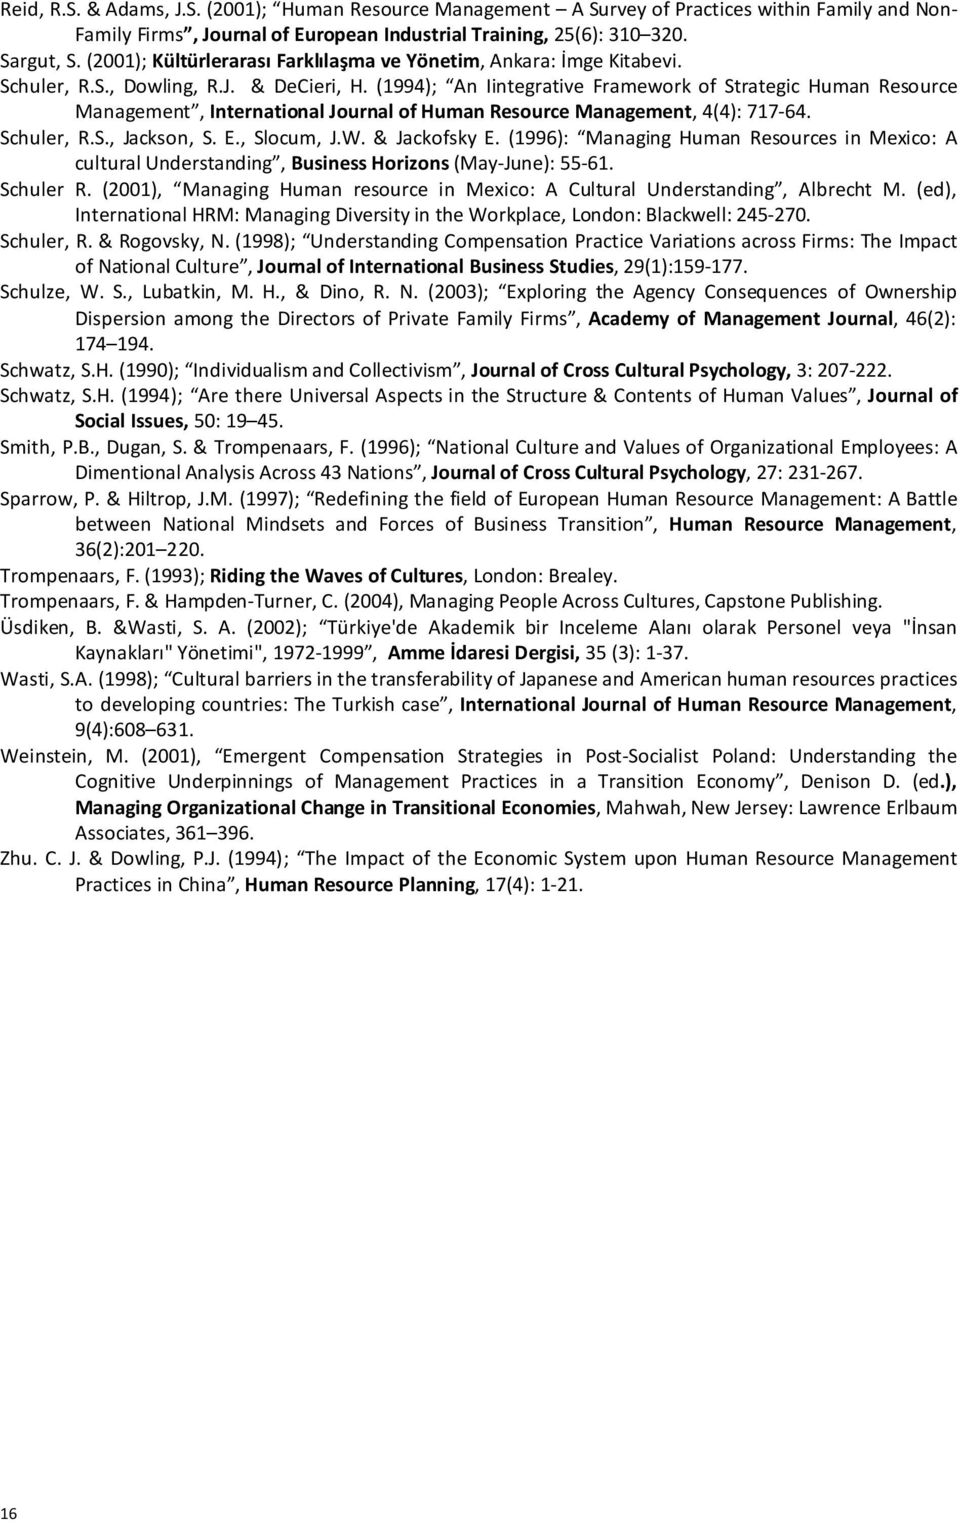 (1994); An Iintegrative Framework of Strategic Human Resource Management, International Journal of Human Resource Management, 4(4): 717-64. Schuler, R.S., Jackson, S. E., Slocum, J.W. & Jackofsky E.